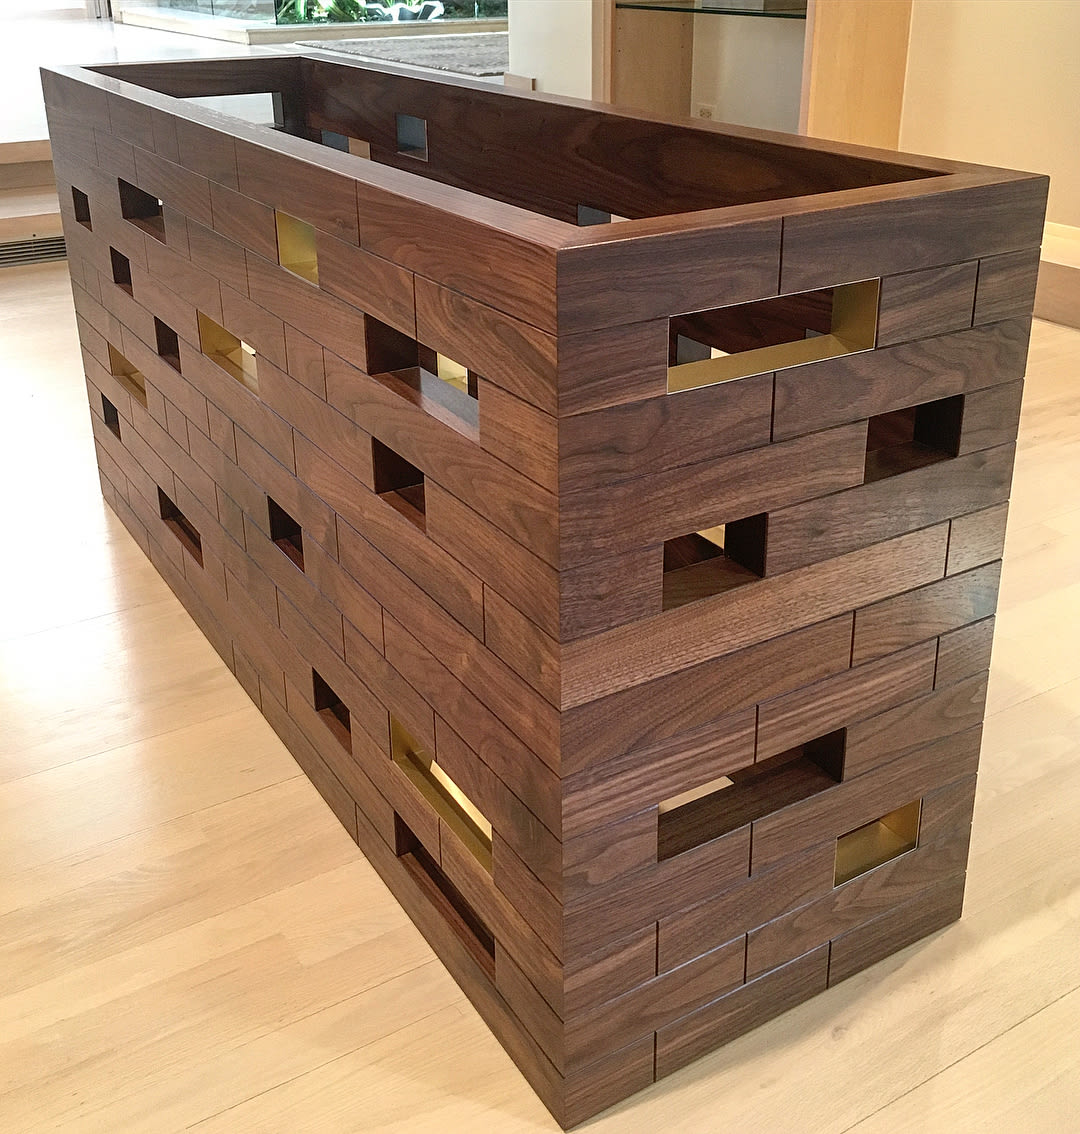 Tables by Rohan Ward seen at Private Residence, Winnetka - Missing Brick